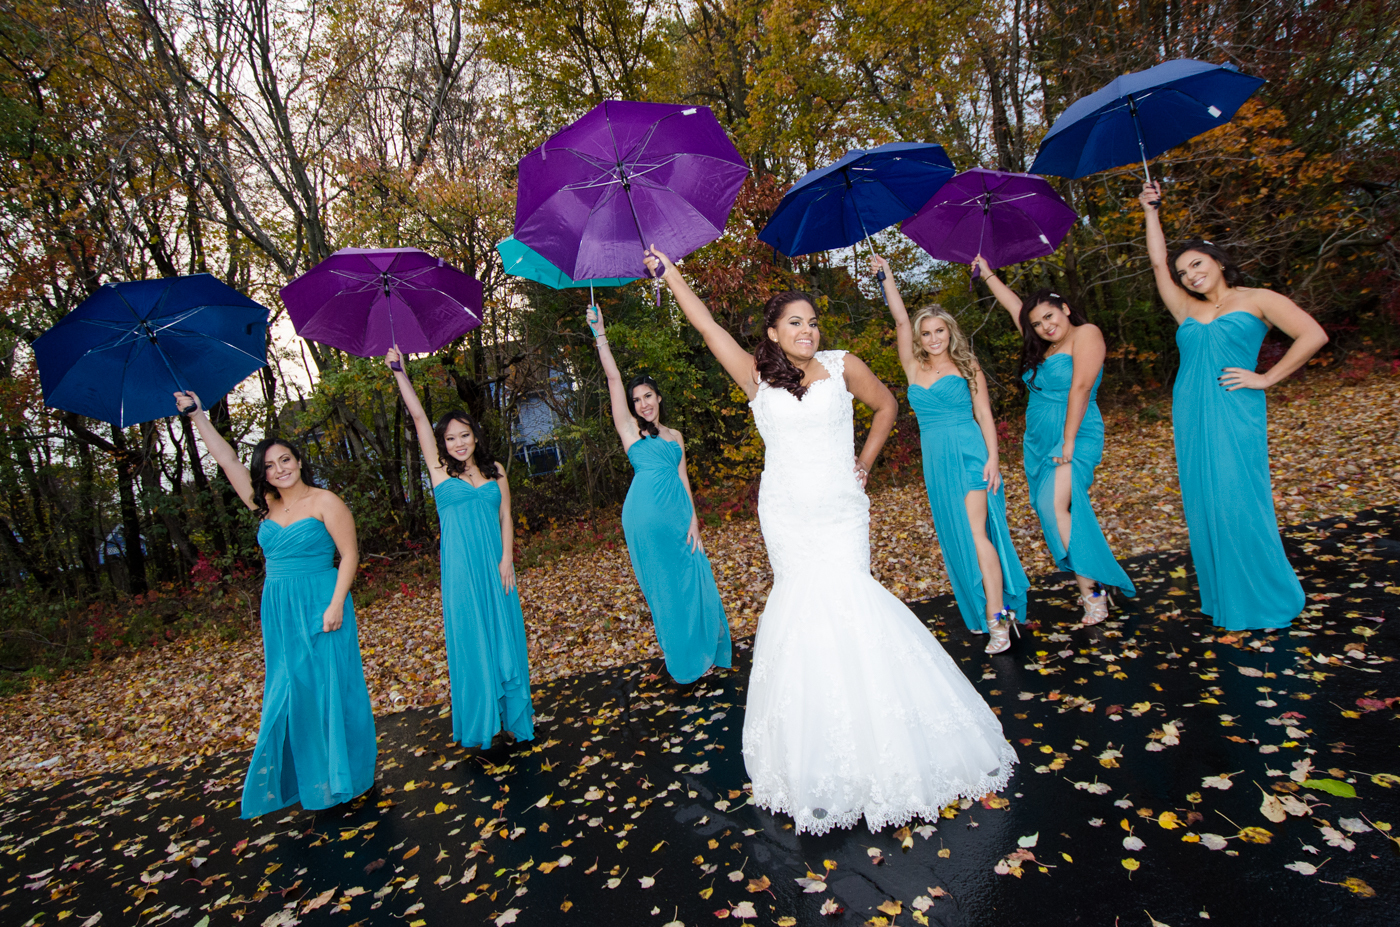 wedding-photo-westchester-new-york-njohnston-photography-62.jpg